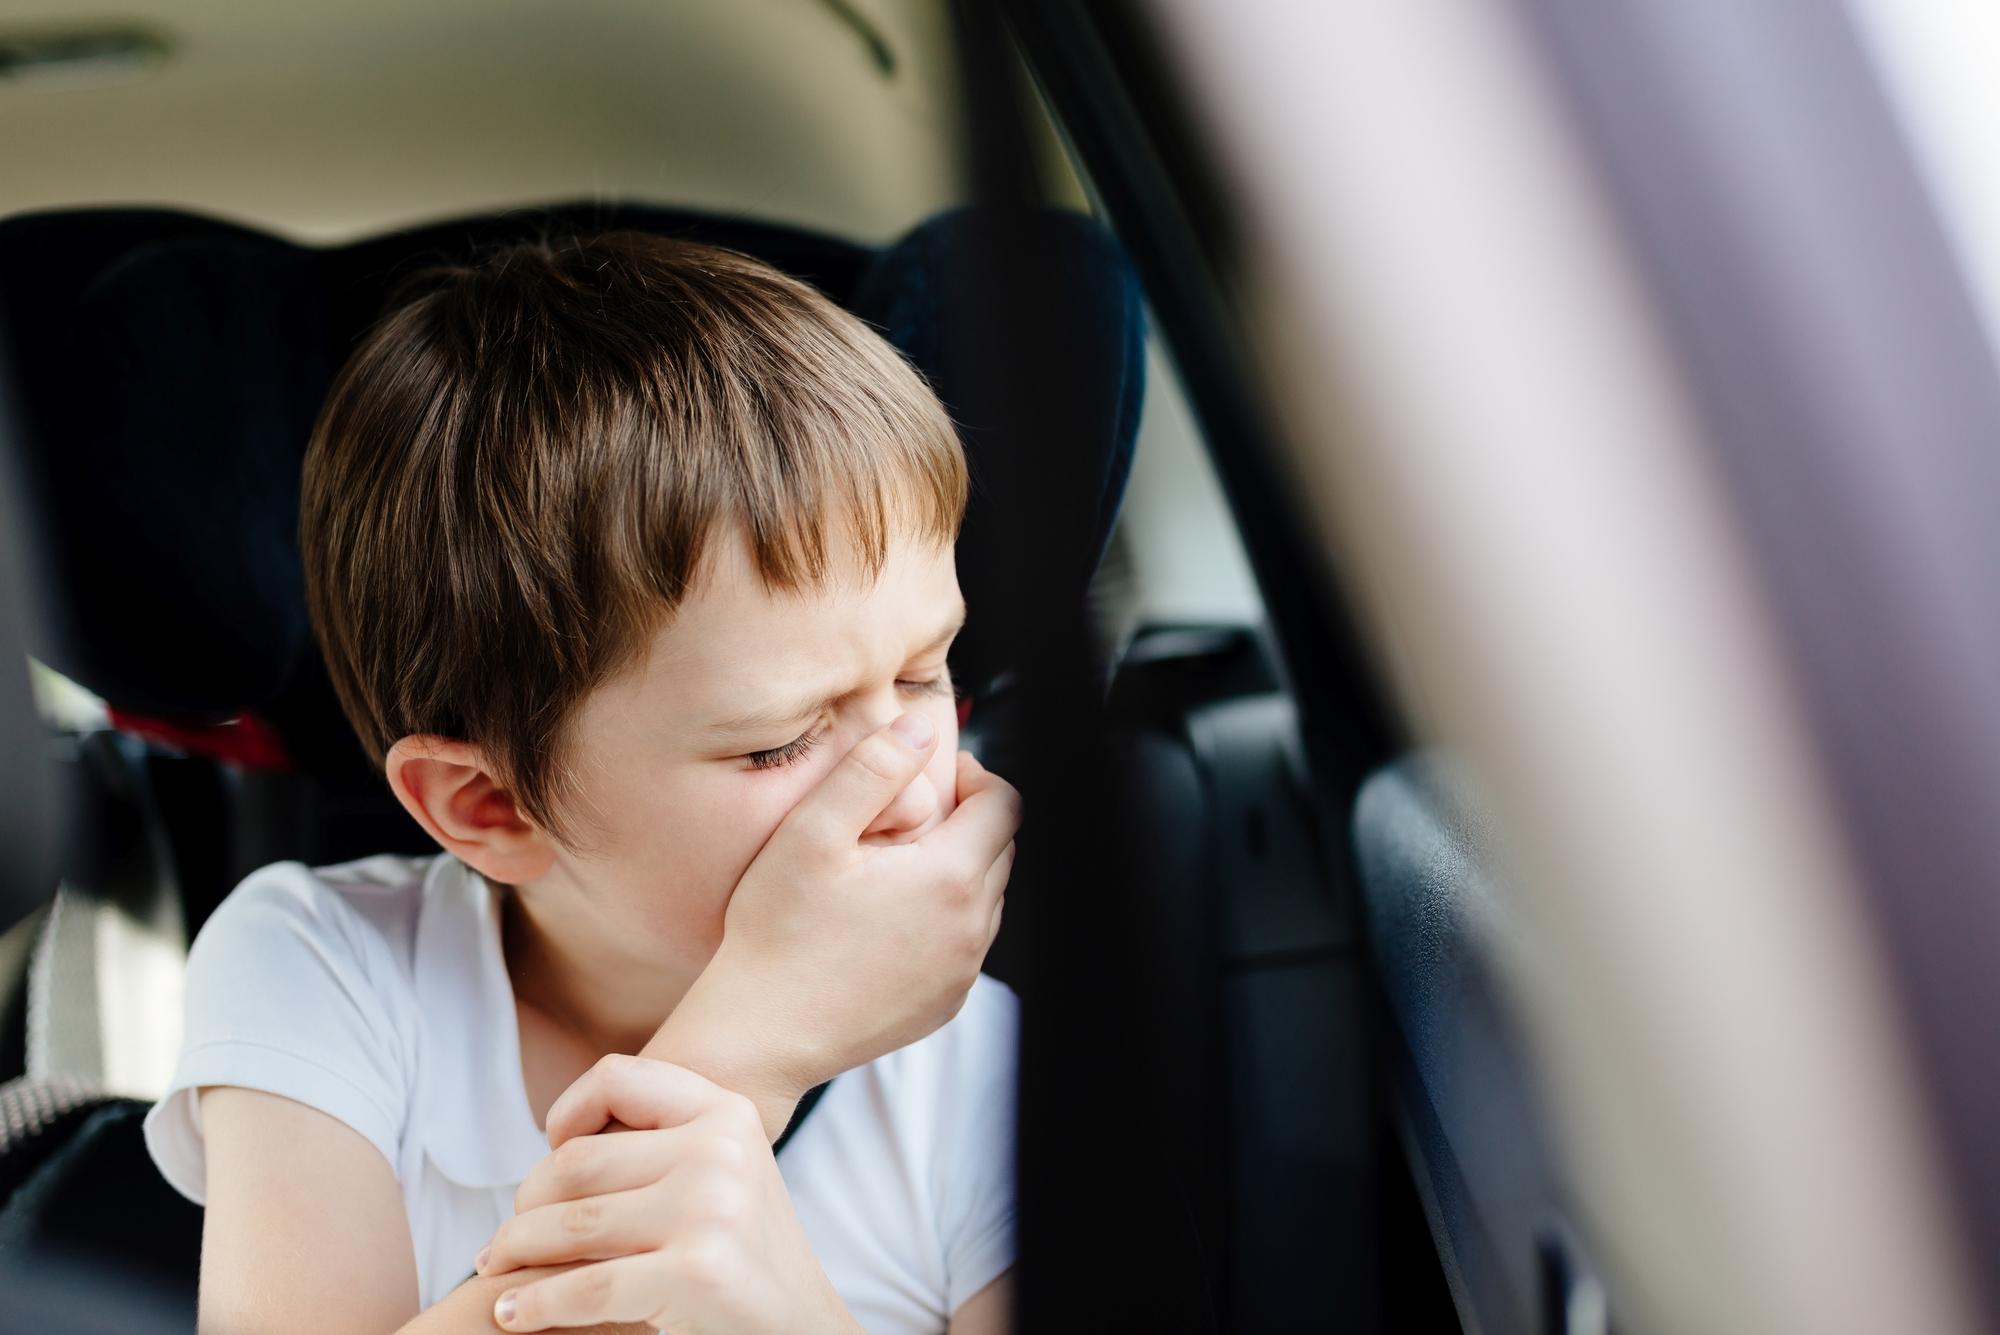 child with motion sickness in the car